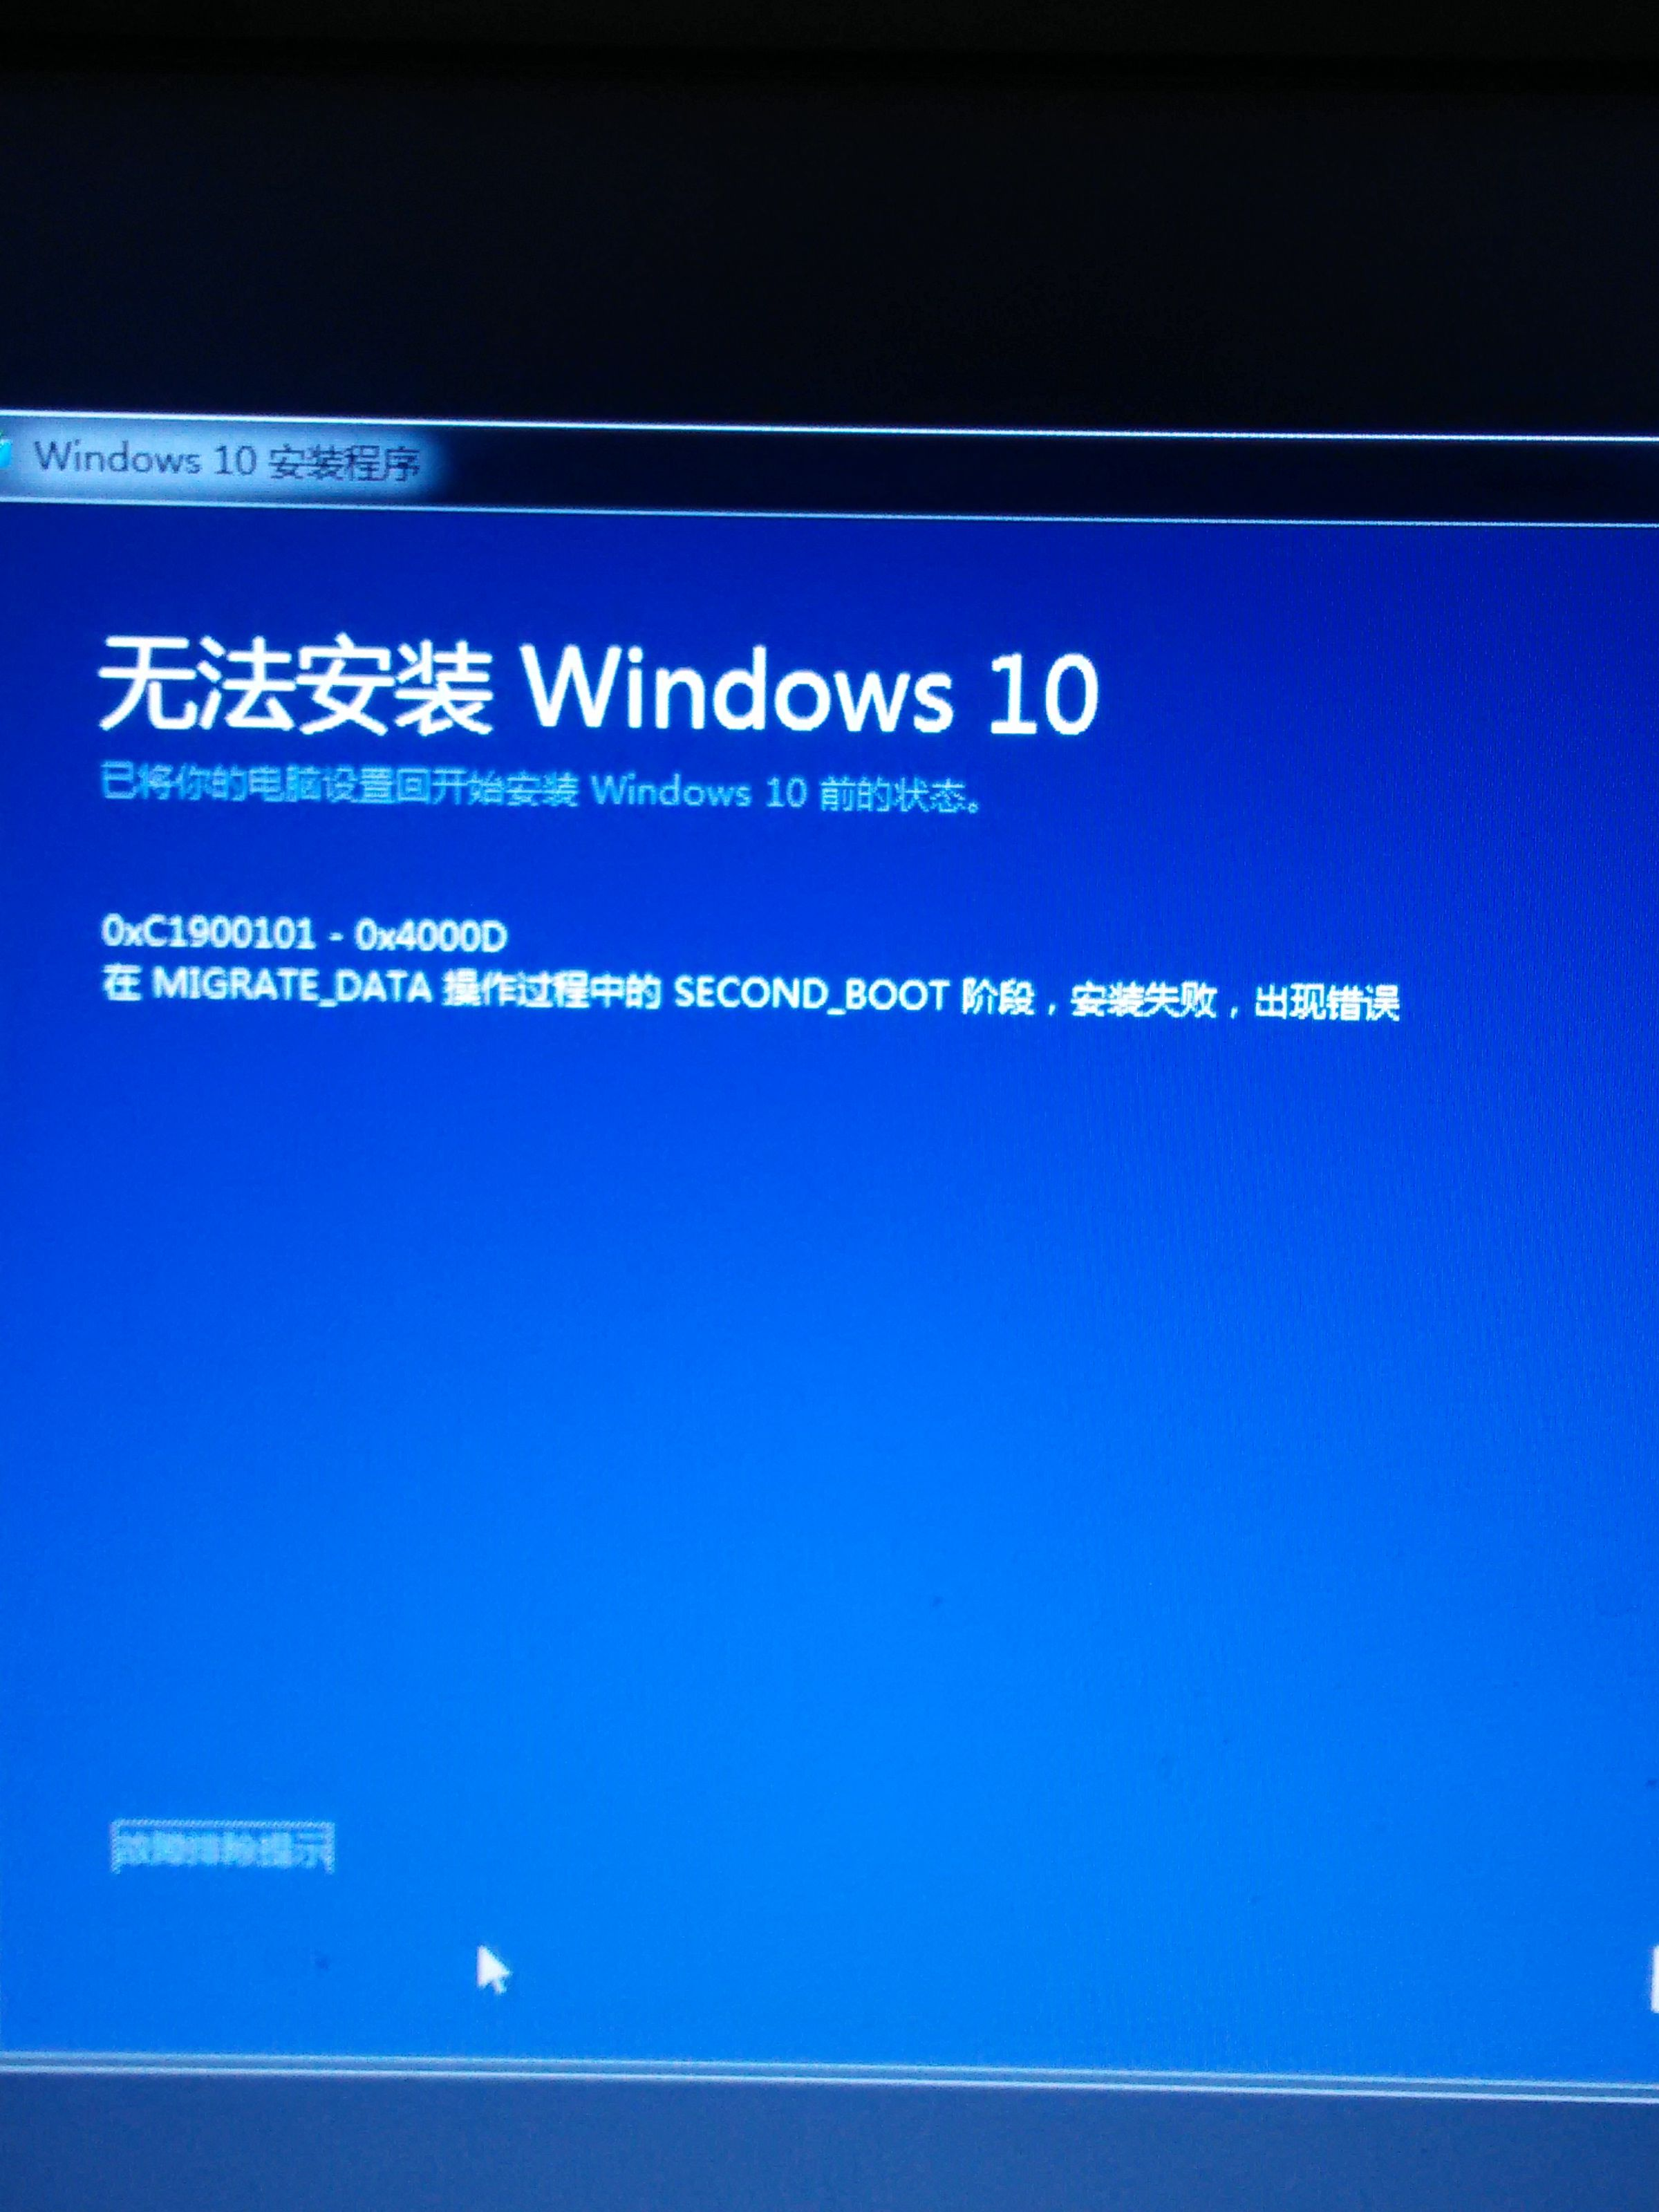 how to access win10 from win 7